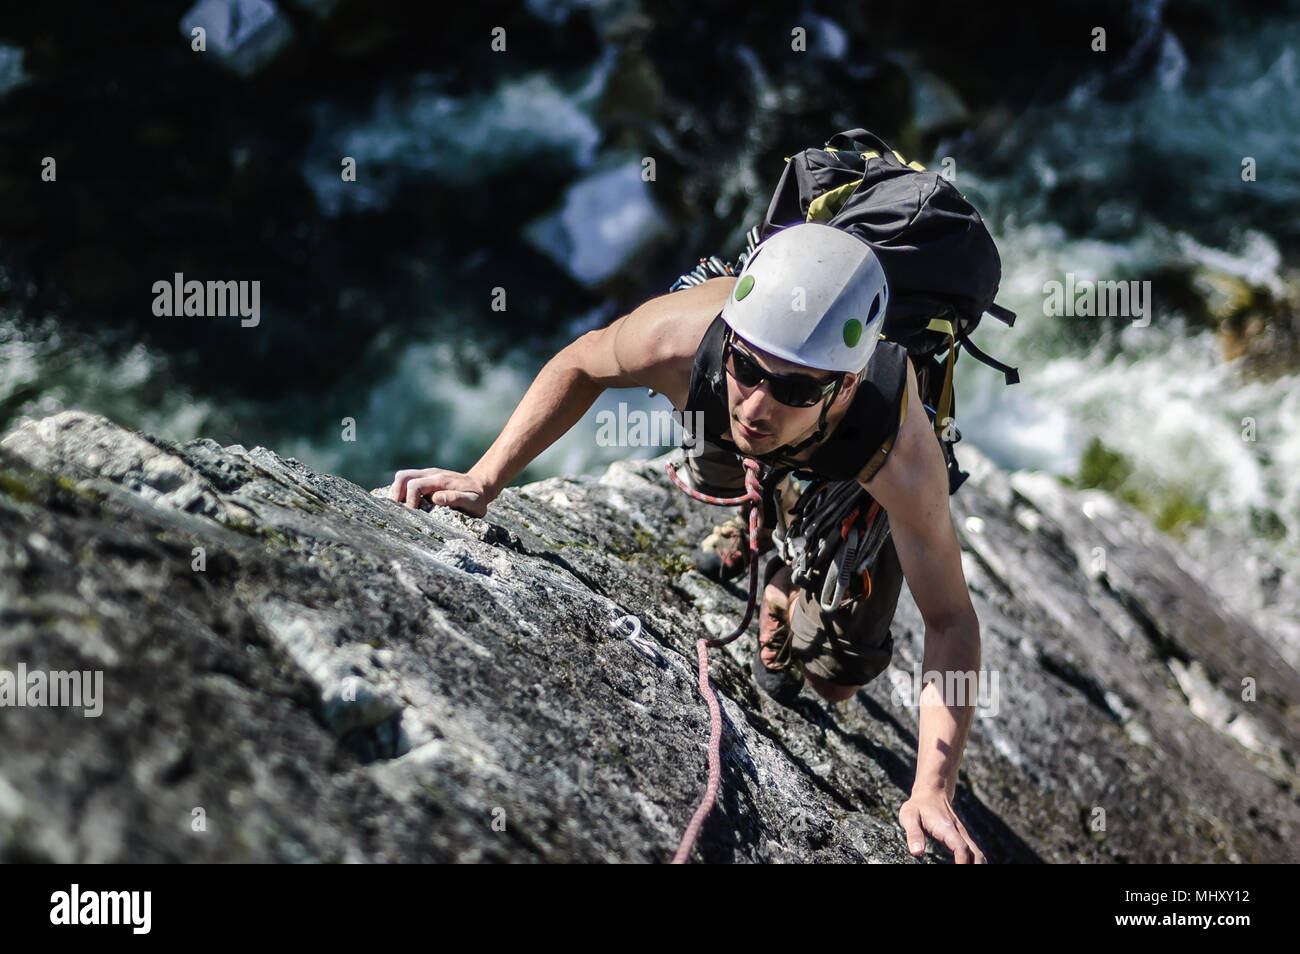 Man trad climbing at The Chief, Squamish, Canada - Stock Image